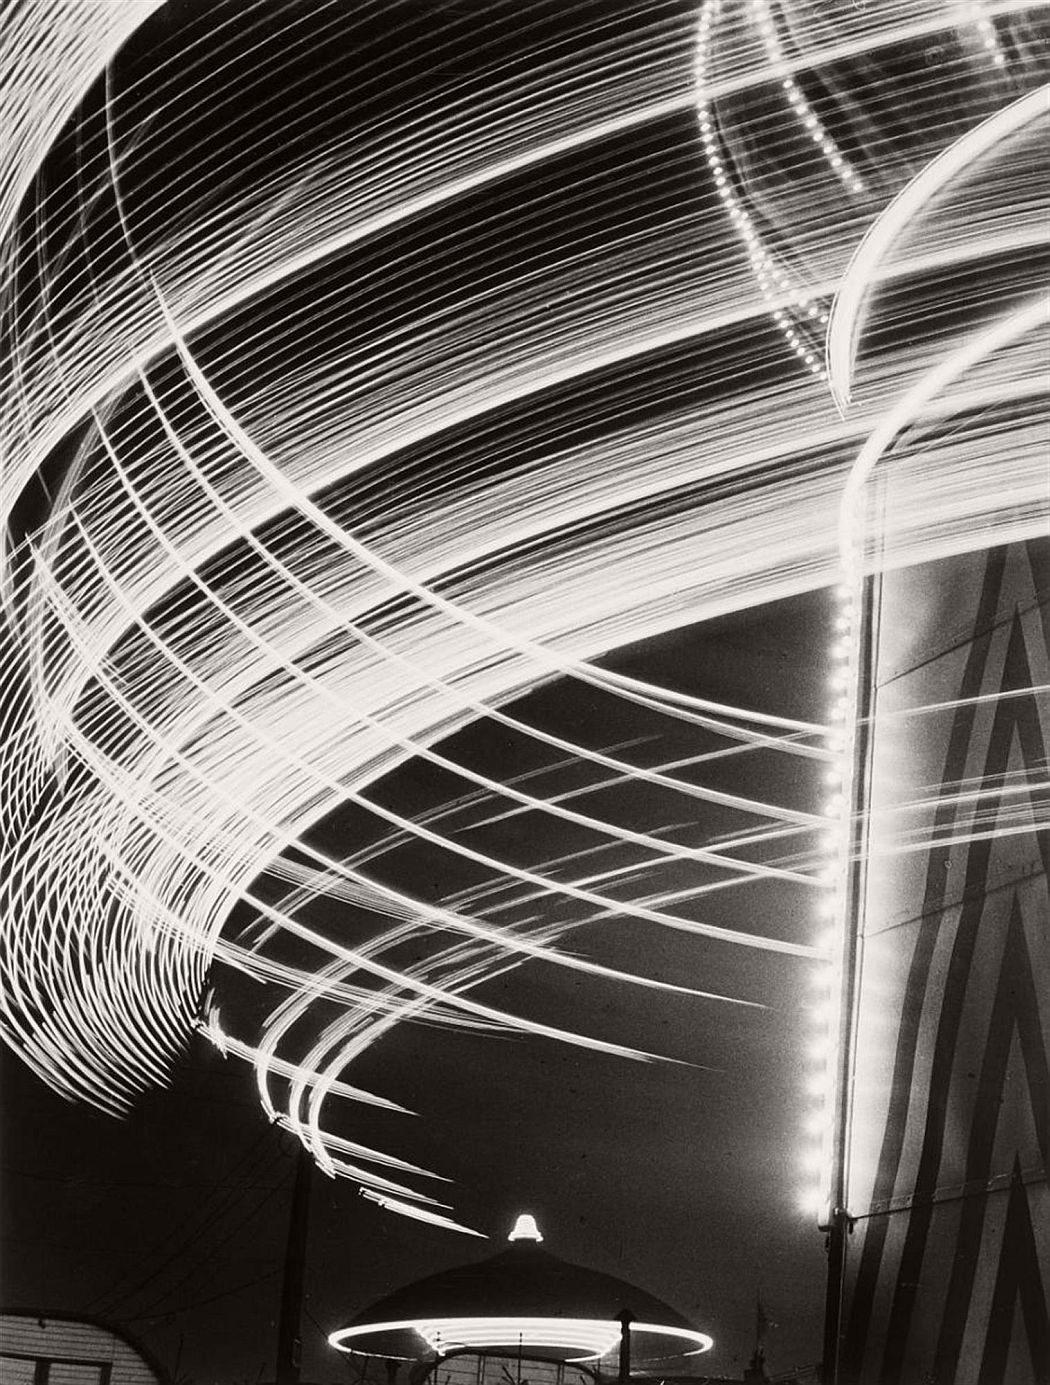 toni-schneiders-germany-abstract-photographer-03